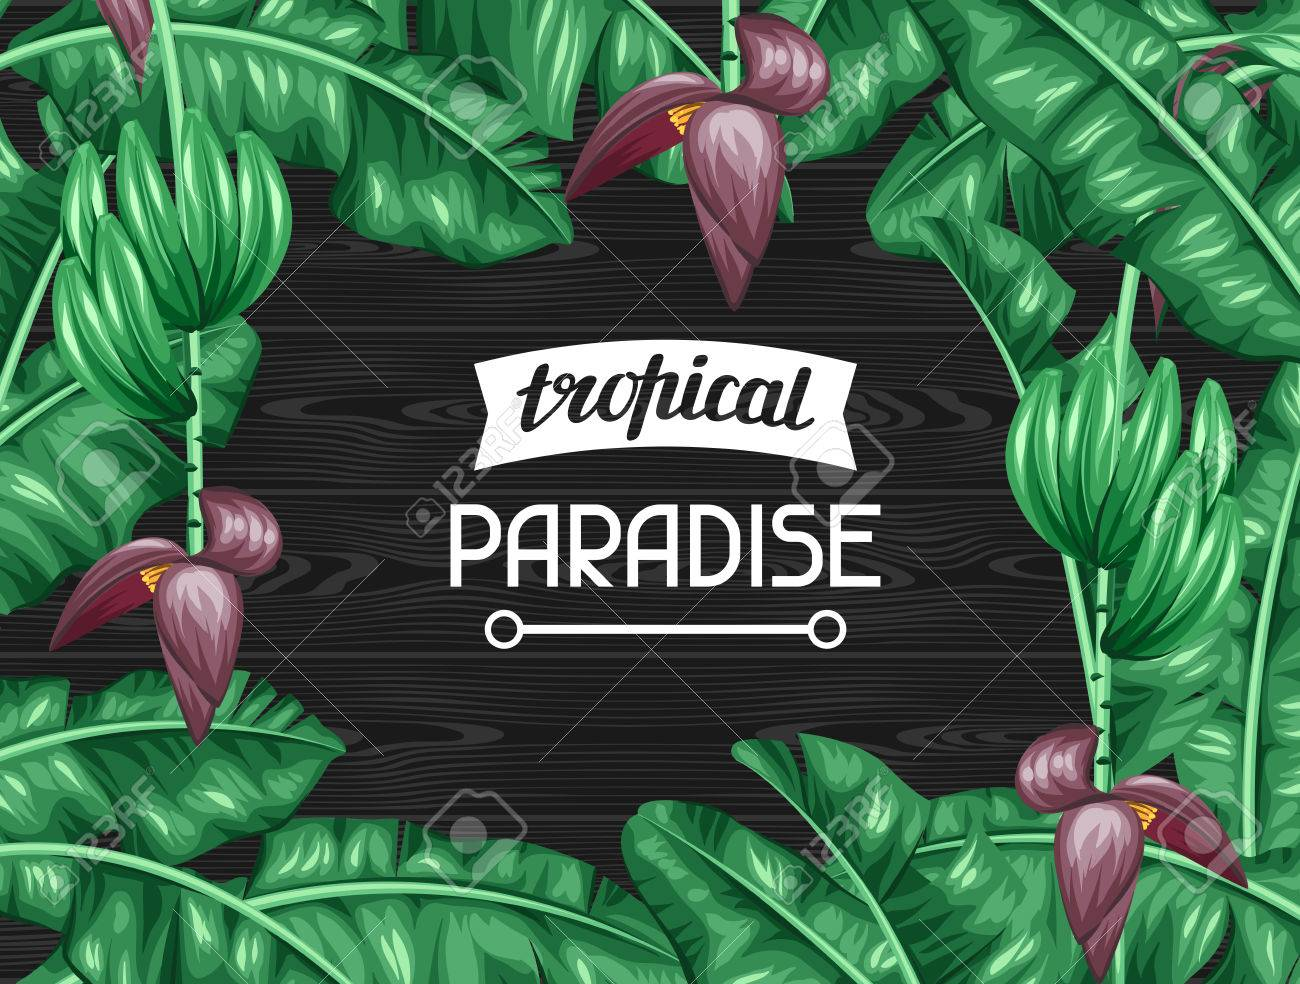 Frame with banana leaves. Decorative image of tropical foliage, flowers and fruits. Design for advertising booklets, banners, flayers, cards. - 55577915